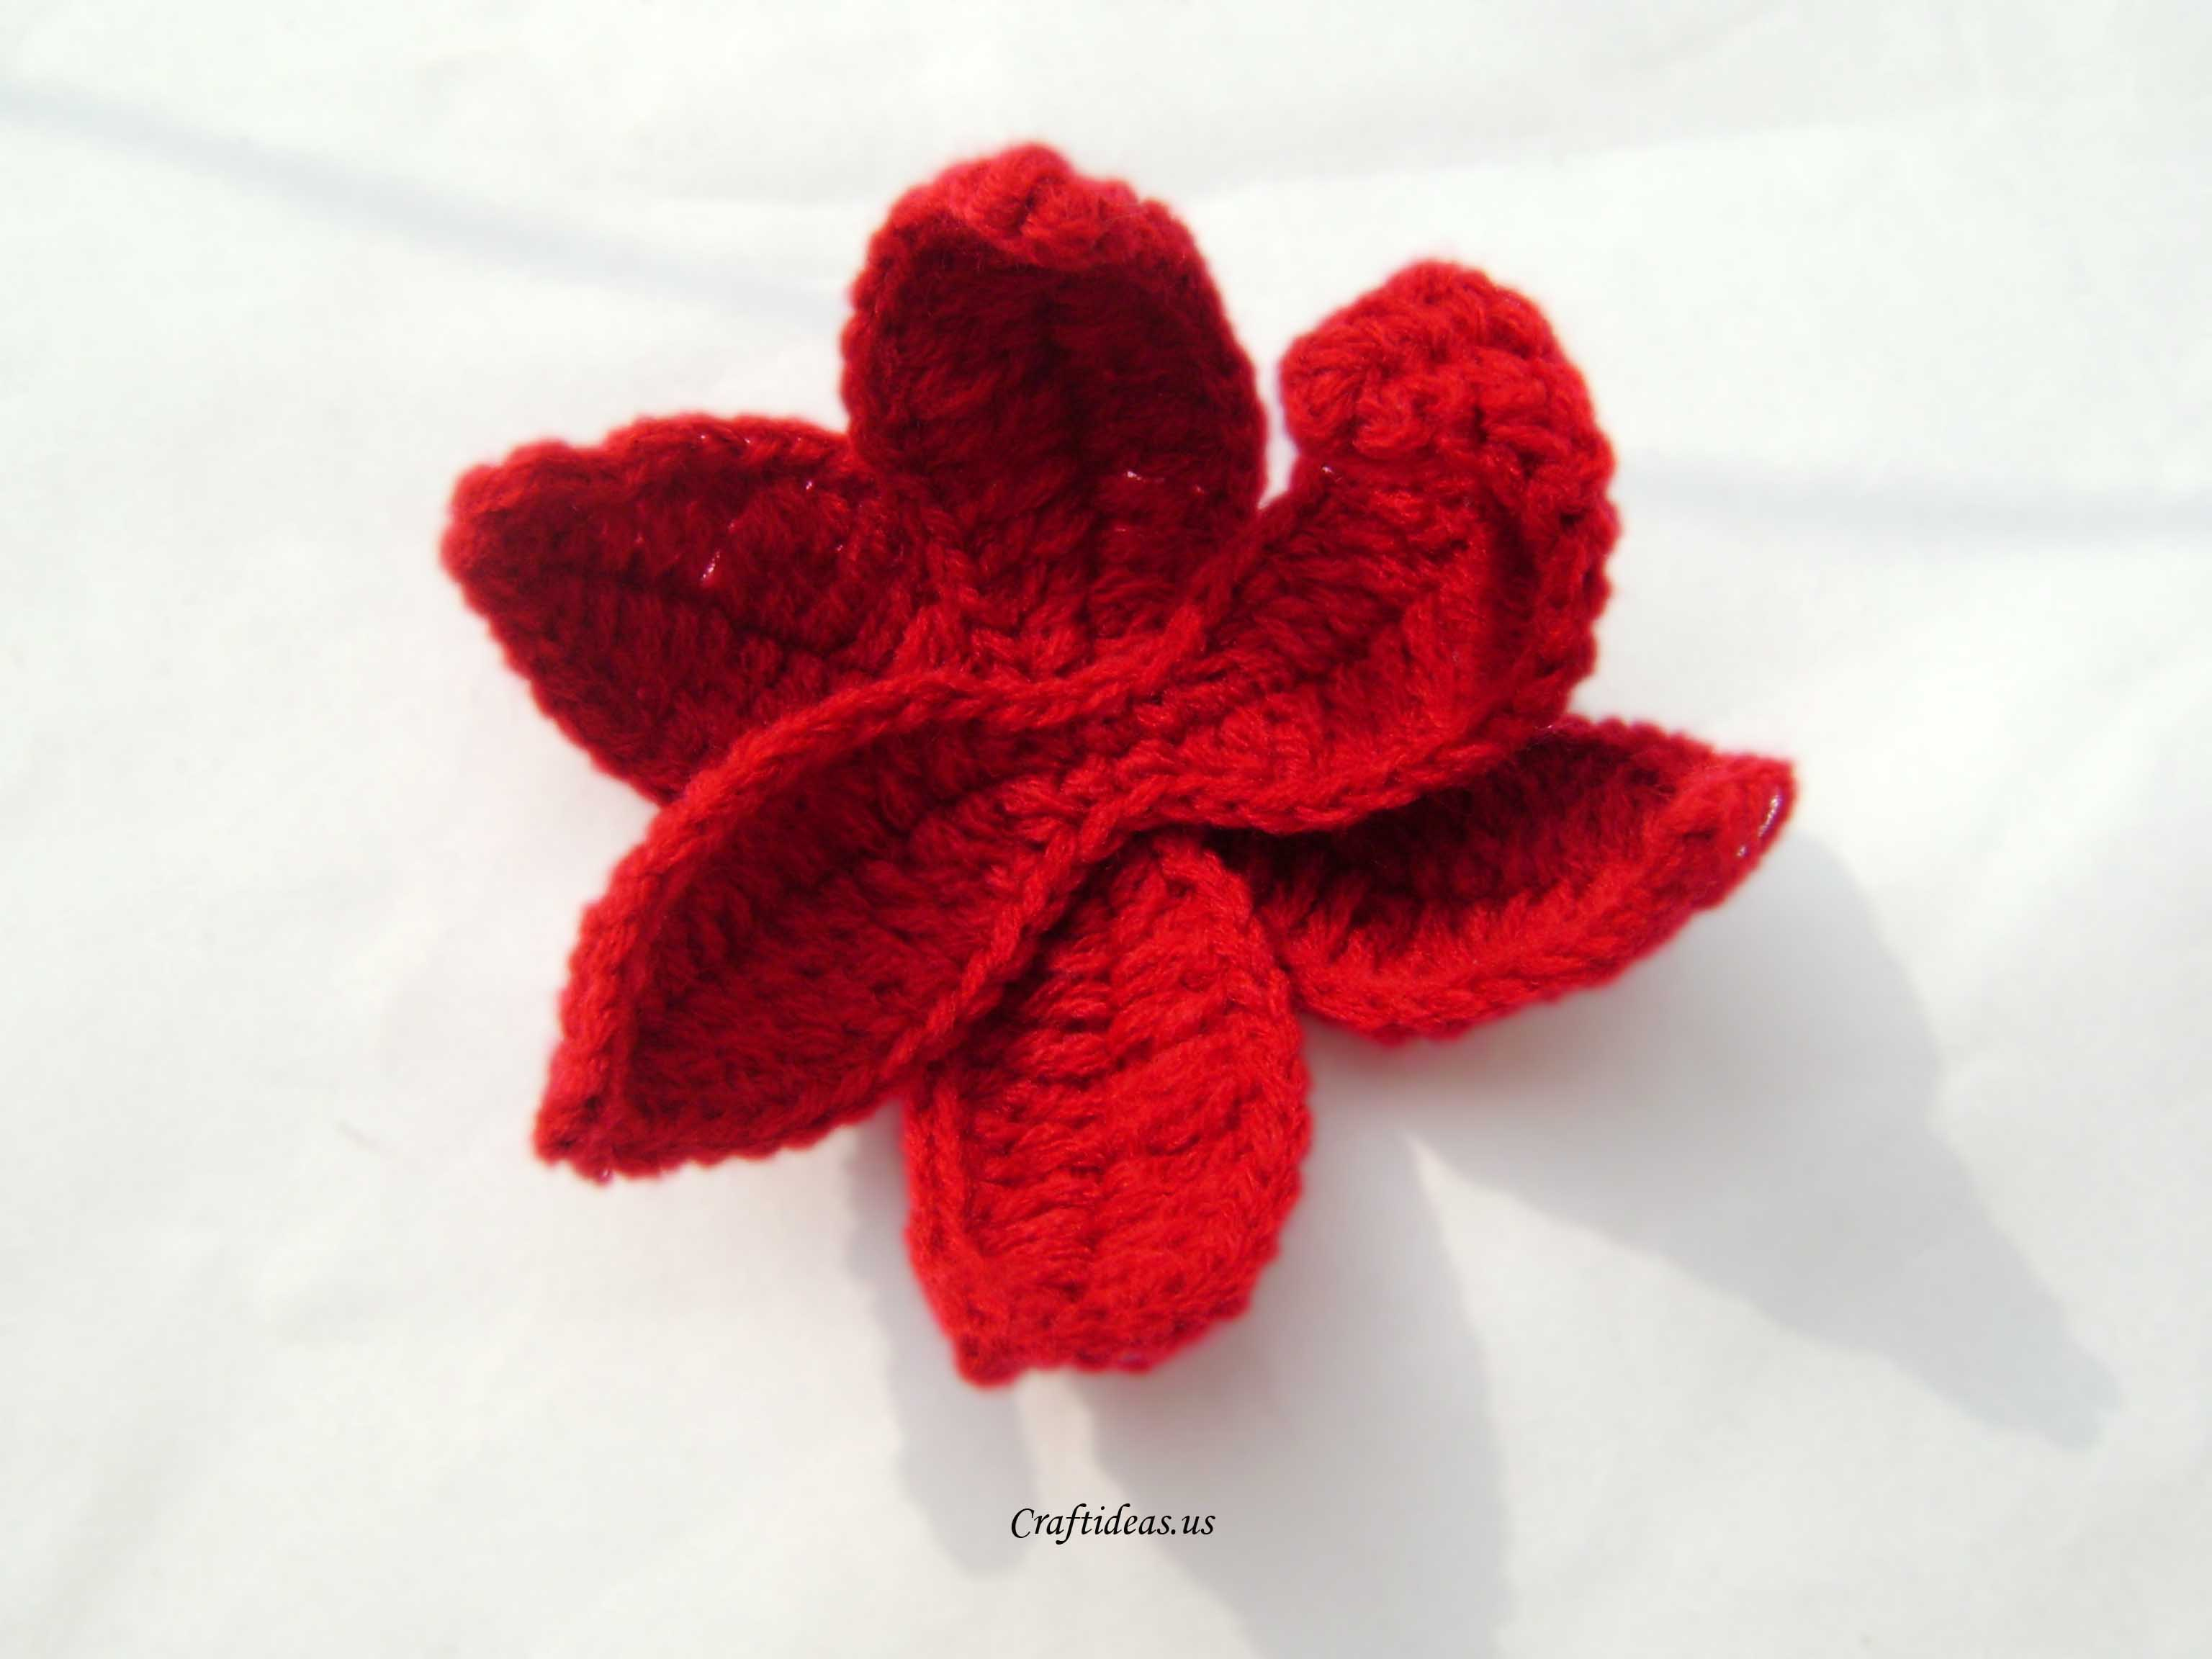 Crochet Craft Projects : Pin Christmas Craft Ideas Crocheted Ornament For Christmas Tree on ...